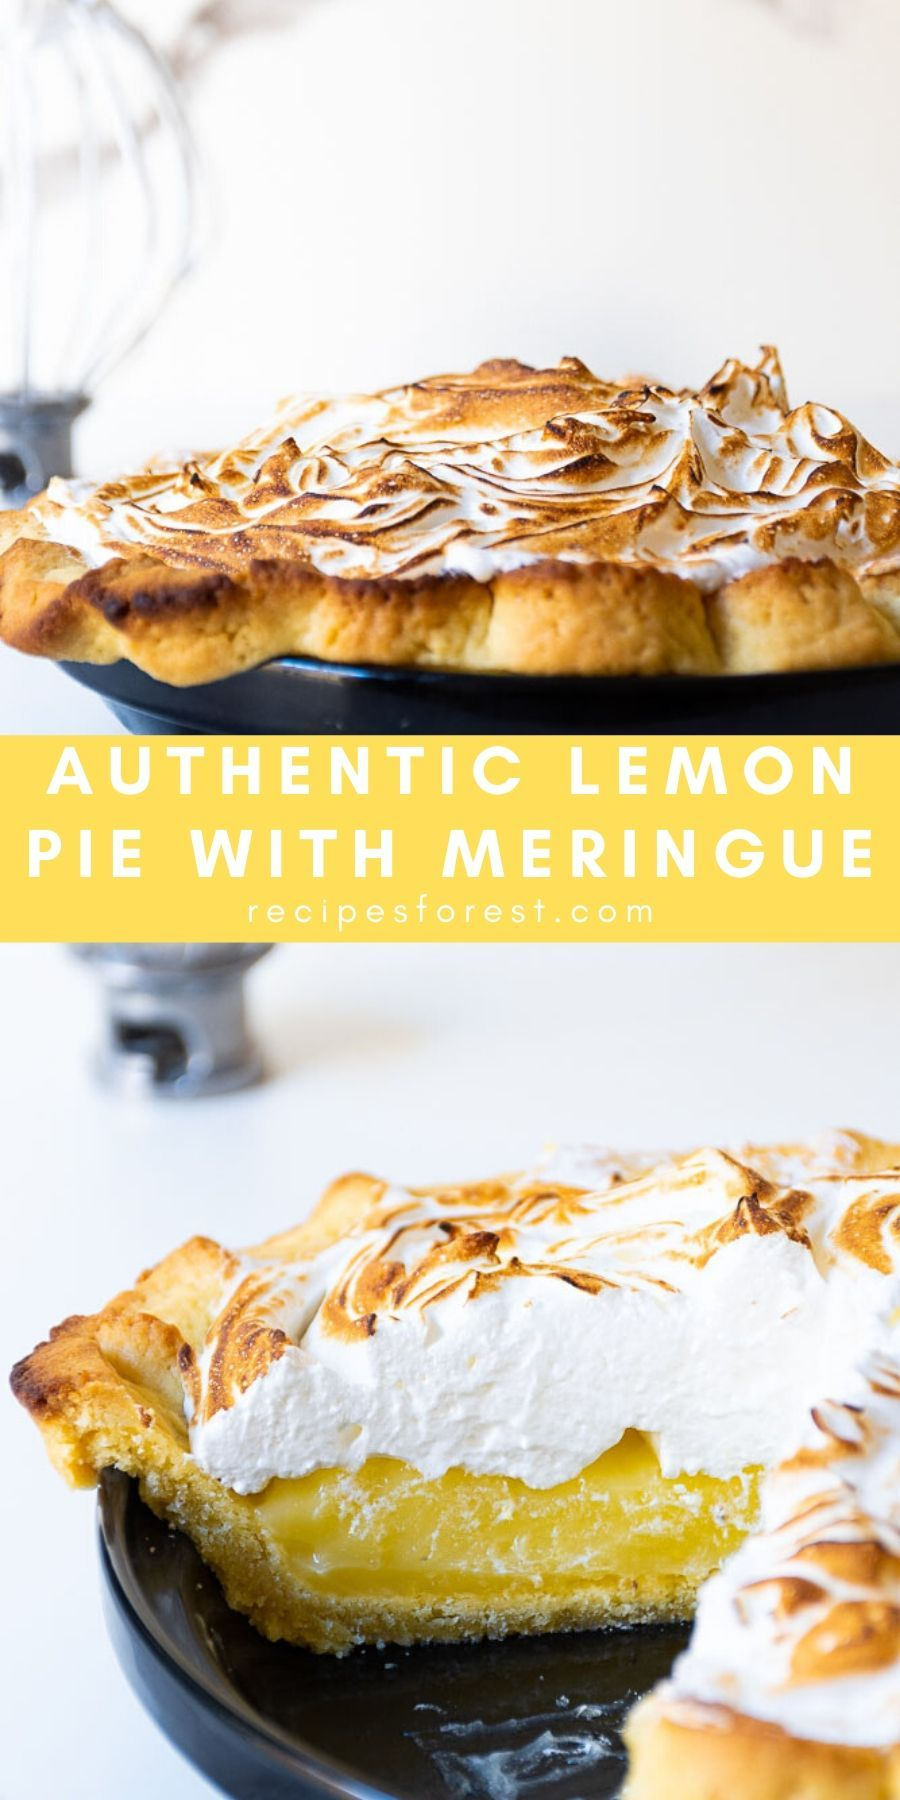 Authentic Lemon Pie With Meringue Recipes Forest Recipe In 2020 Lemon Meringue Pie Easy Meringue Pie Recipes Lemon Pie